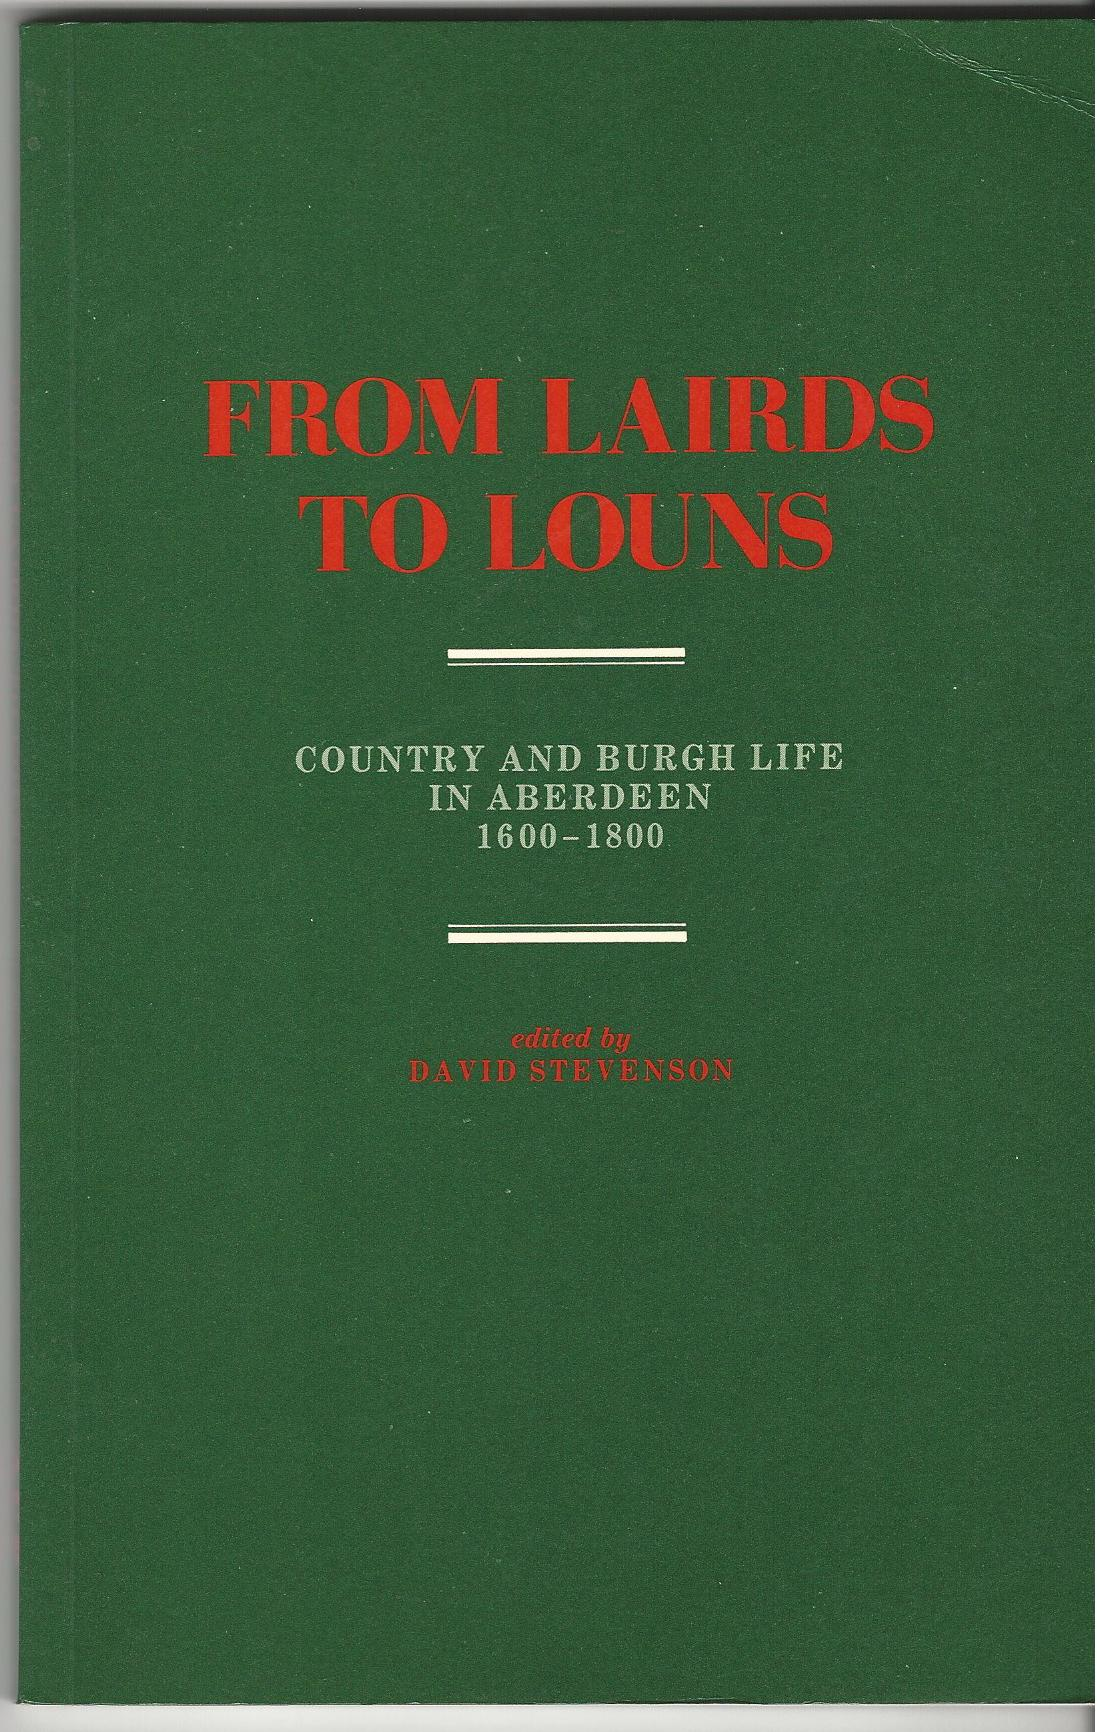 Image for From Lairds to Louns: Country and Burgh Life in Aberdeen 1600-1800.